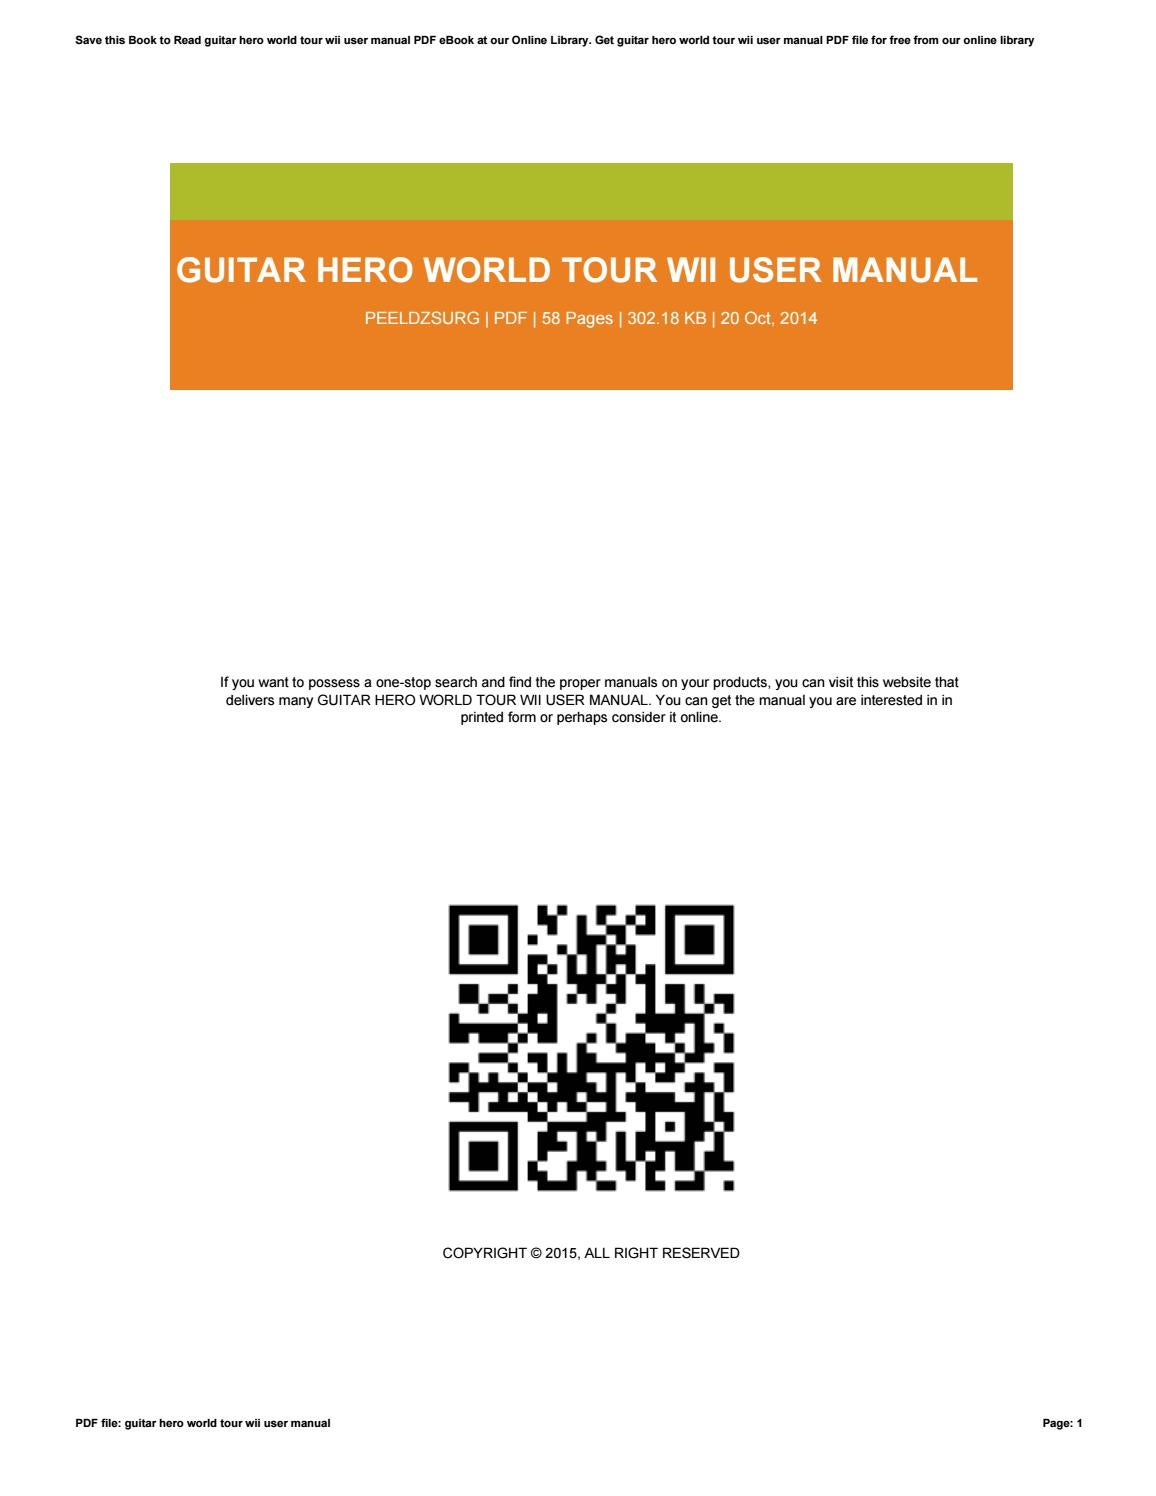 guitar hero world tour wii user manual by chesterserna3728 issuu rh issuu com Guitar Hero World Tour Main Menu Guitar Hero World Tour Drums